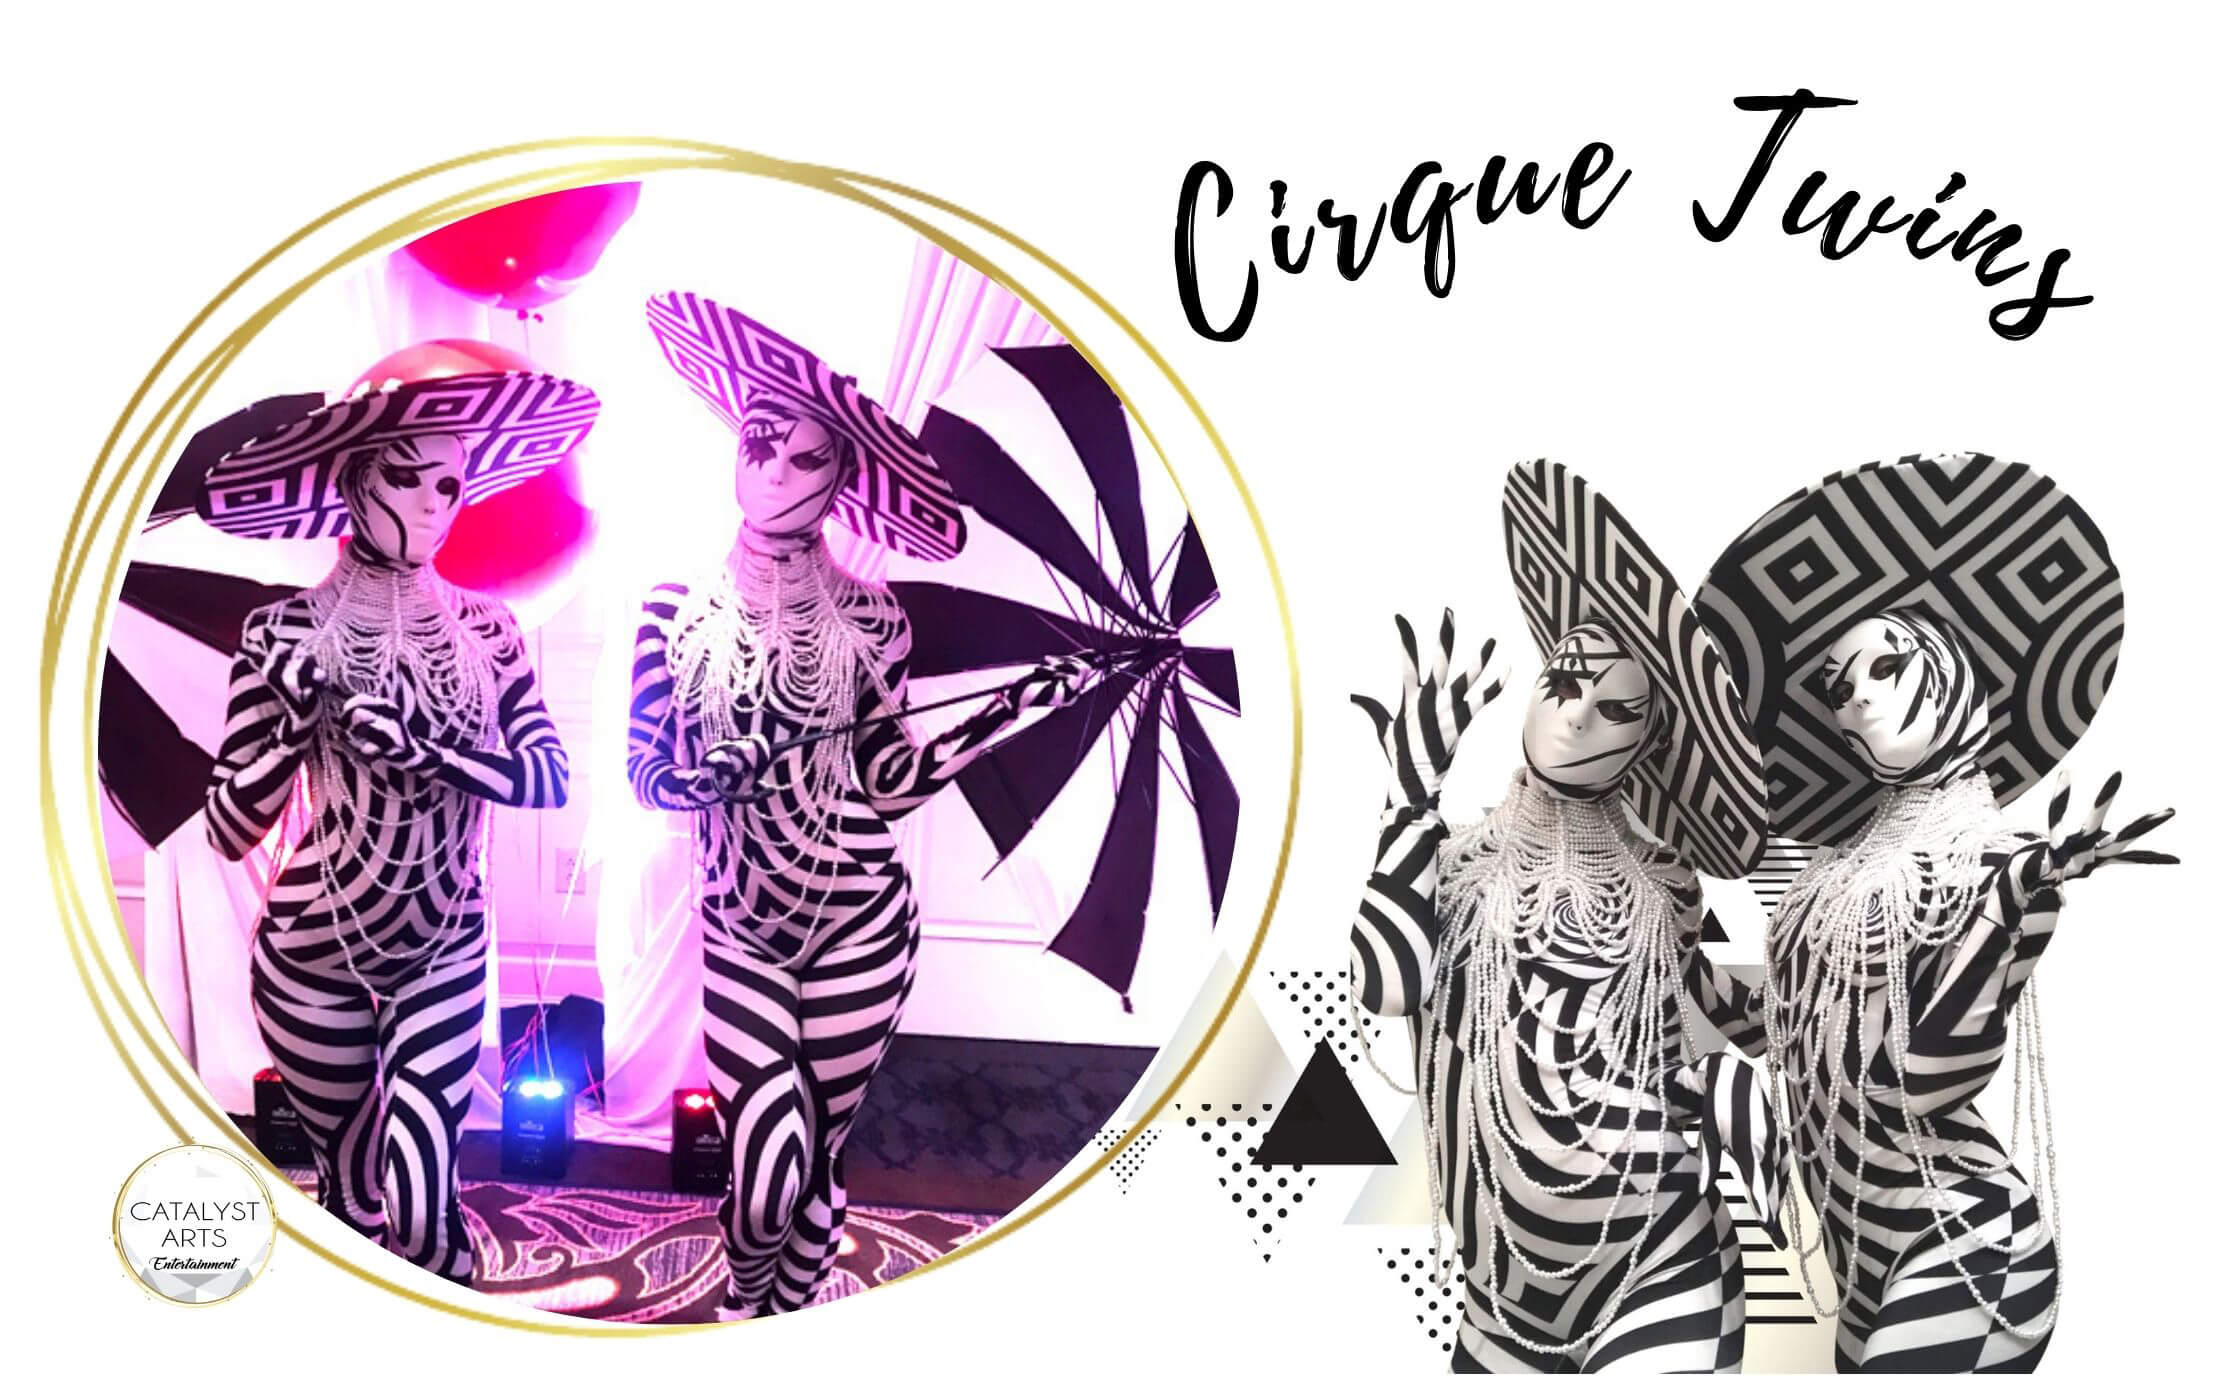 Mesmerizing Cirque Twins- bubble costumed performers by Catalyst Arts California